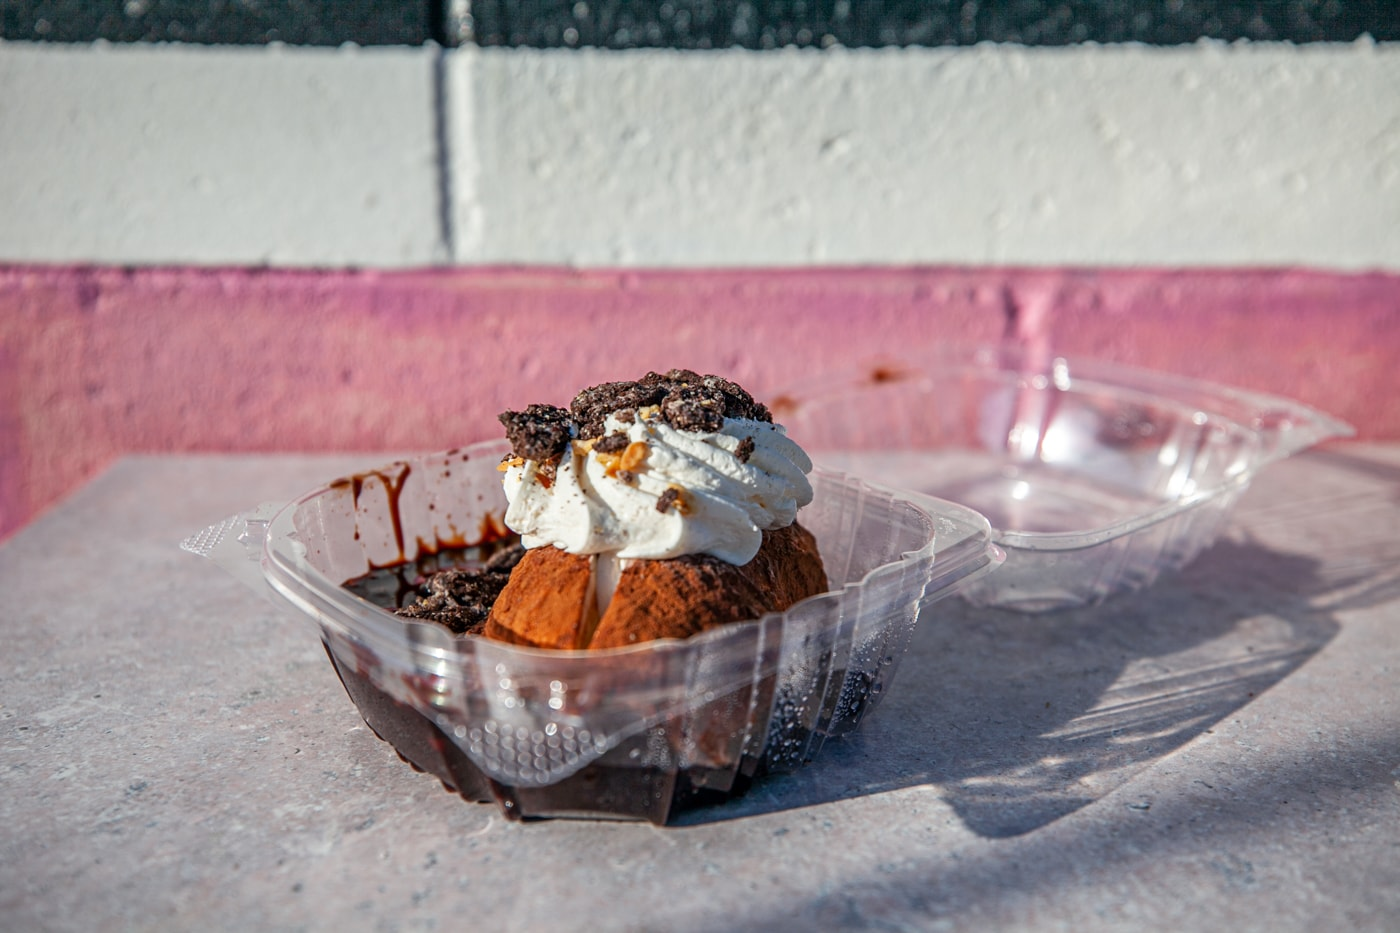 Idaho Potato Ice Cream at Westside Drive In in Boise, Idaho - ice cream sundae shaped like an Idaho baked potato featured on Diners, Drive Ins, and Dives.